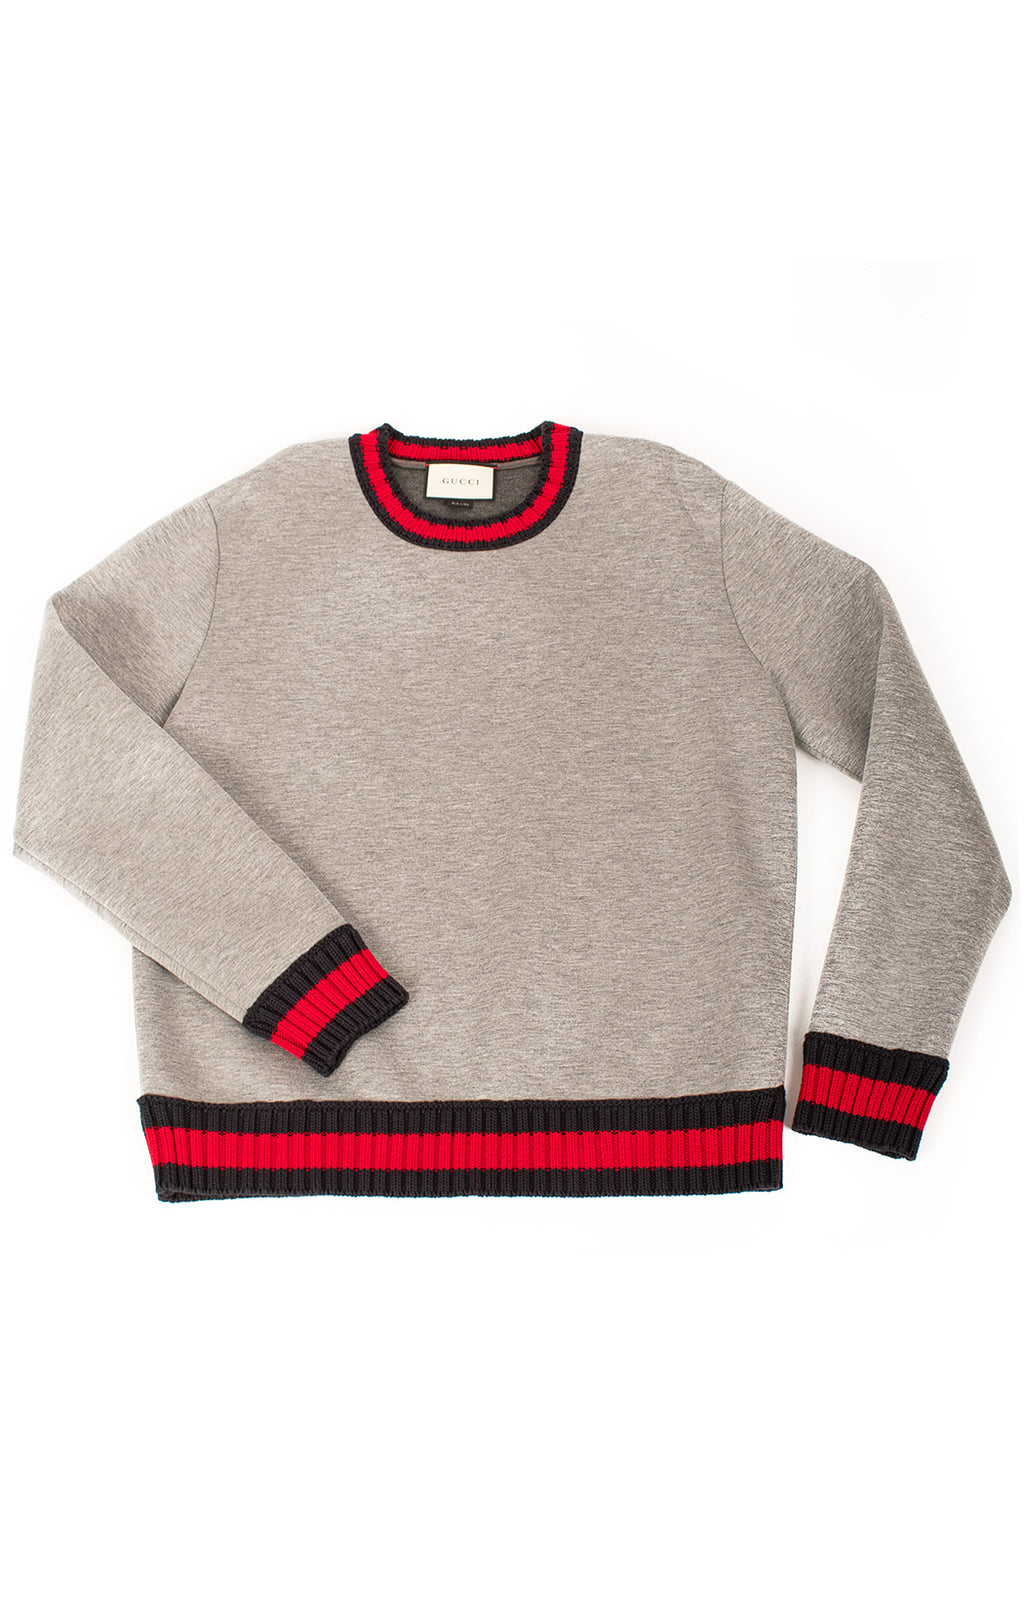 Front view of GUCCI  Sweatshirt Size: No size tags fits like XL